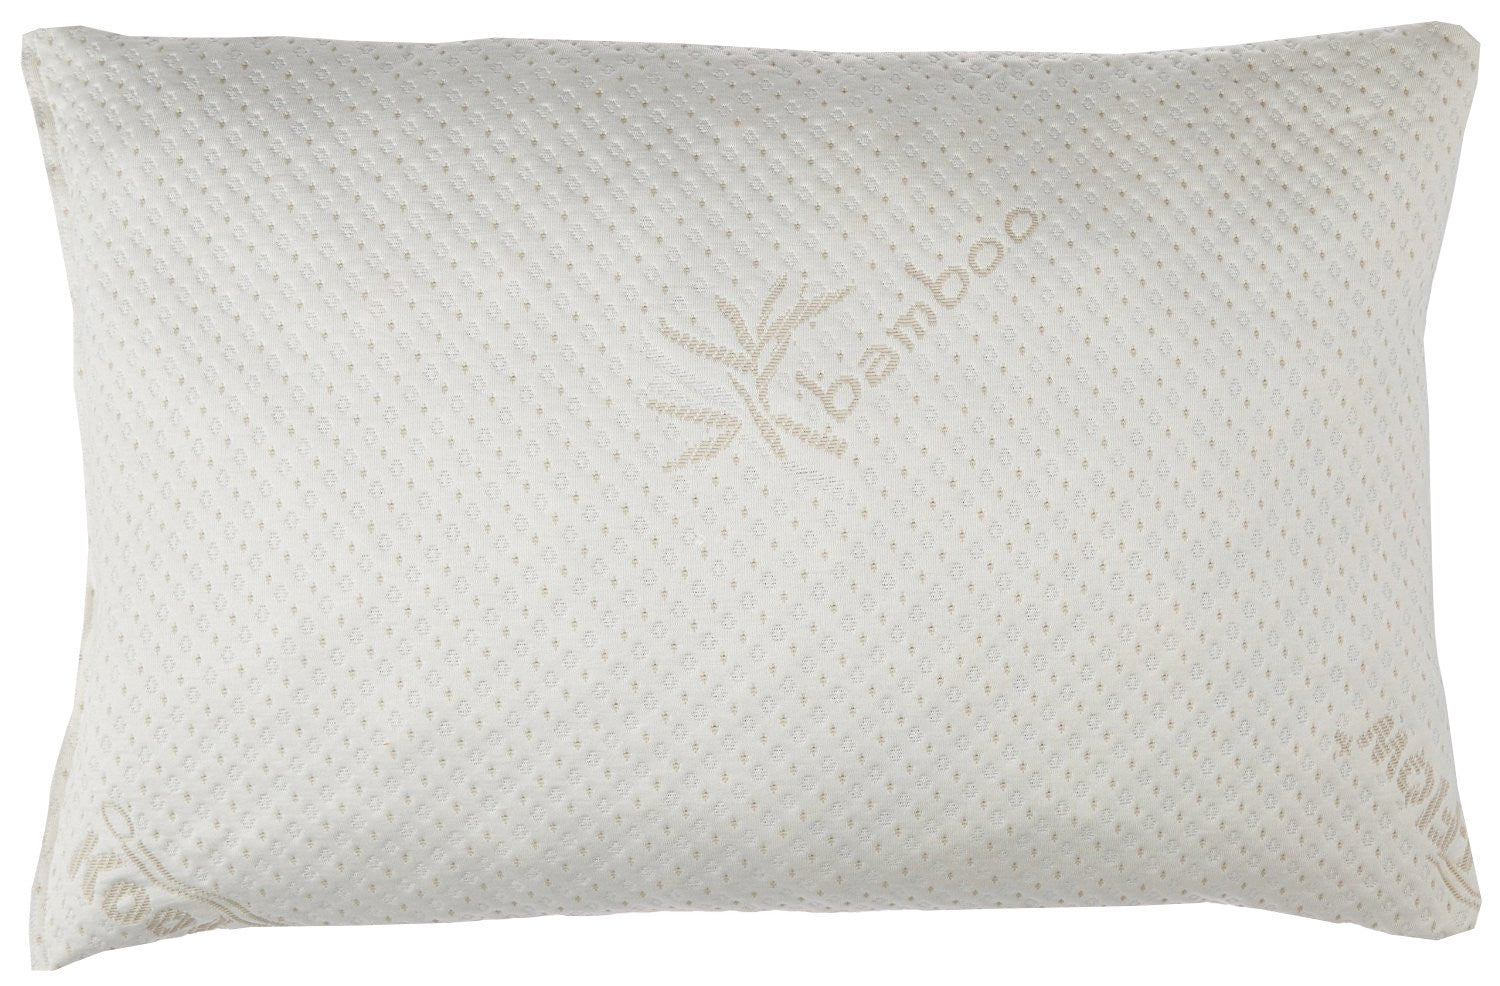 miller sheet amy sales antonino shredded deluxe foam bamboo memory pillow products